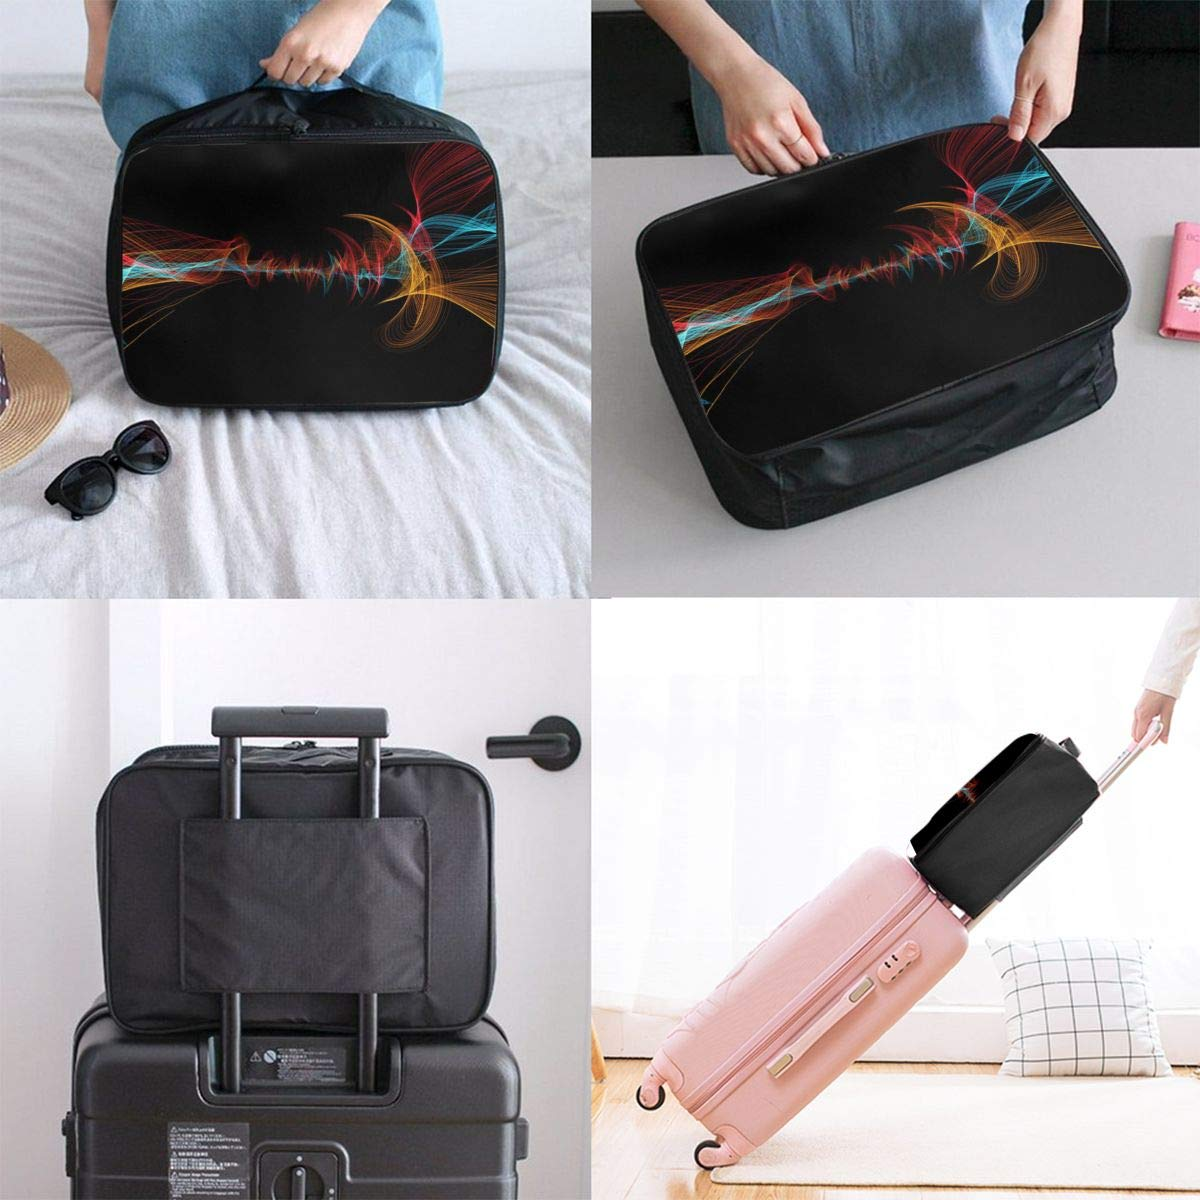 Particle Wave Curve Travel Lightweight Waterproof Foldable Storage Carry Luggage Large Capacity Portable Luggage Bag Duffel Bag